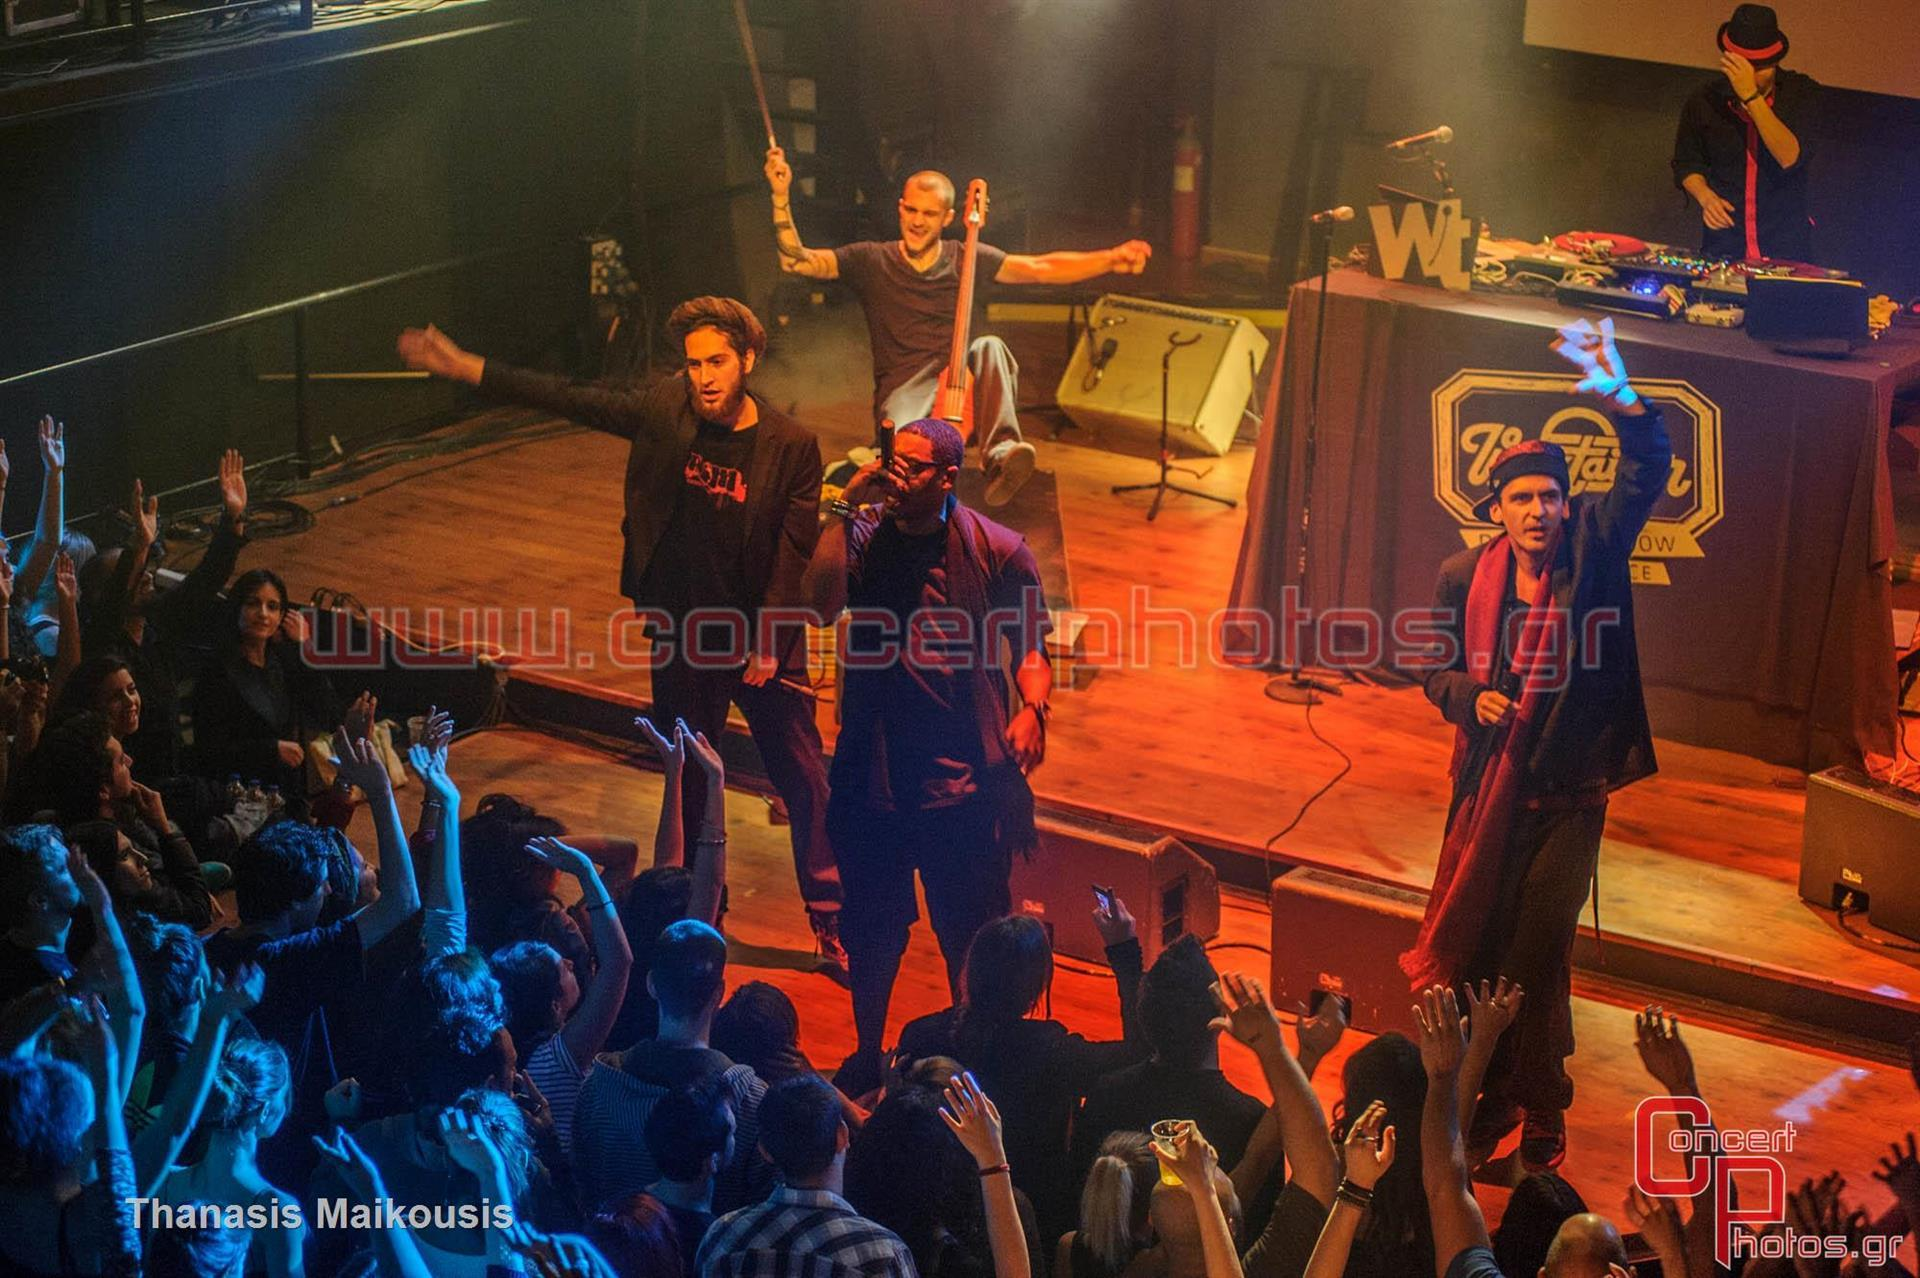 Wax Tailor - photographer: Thanasis Maikousis - ConcertPhotos-8172